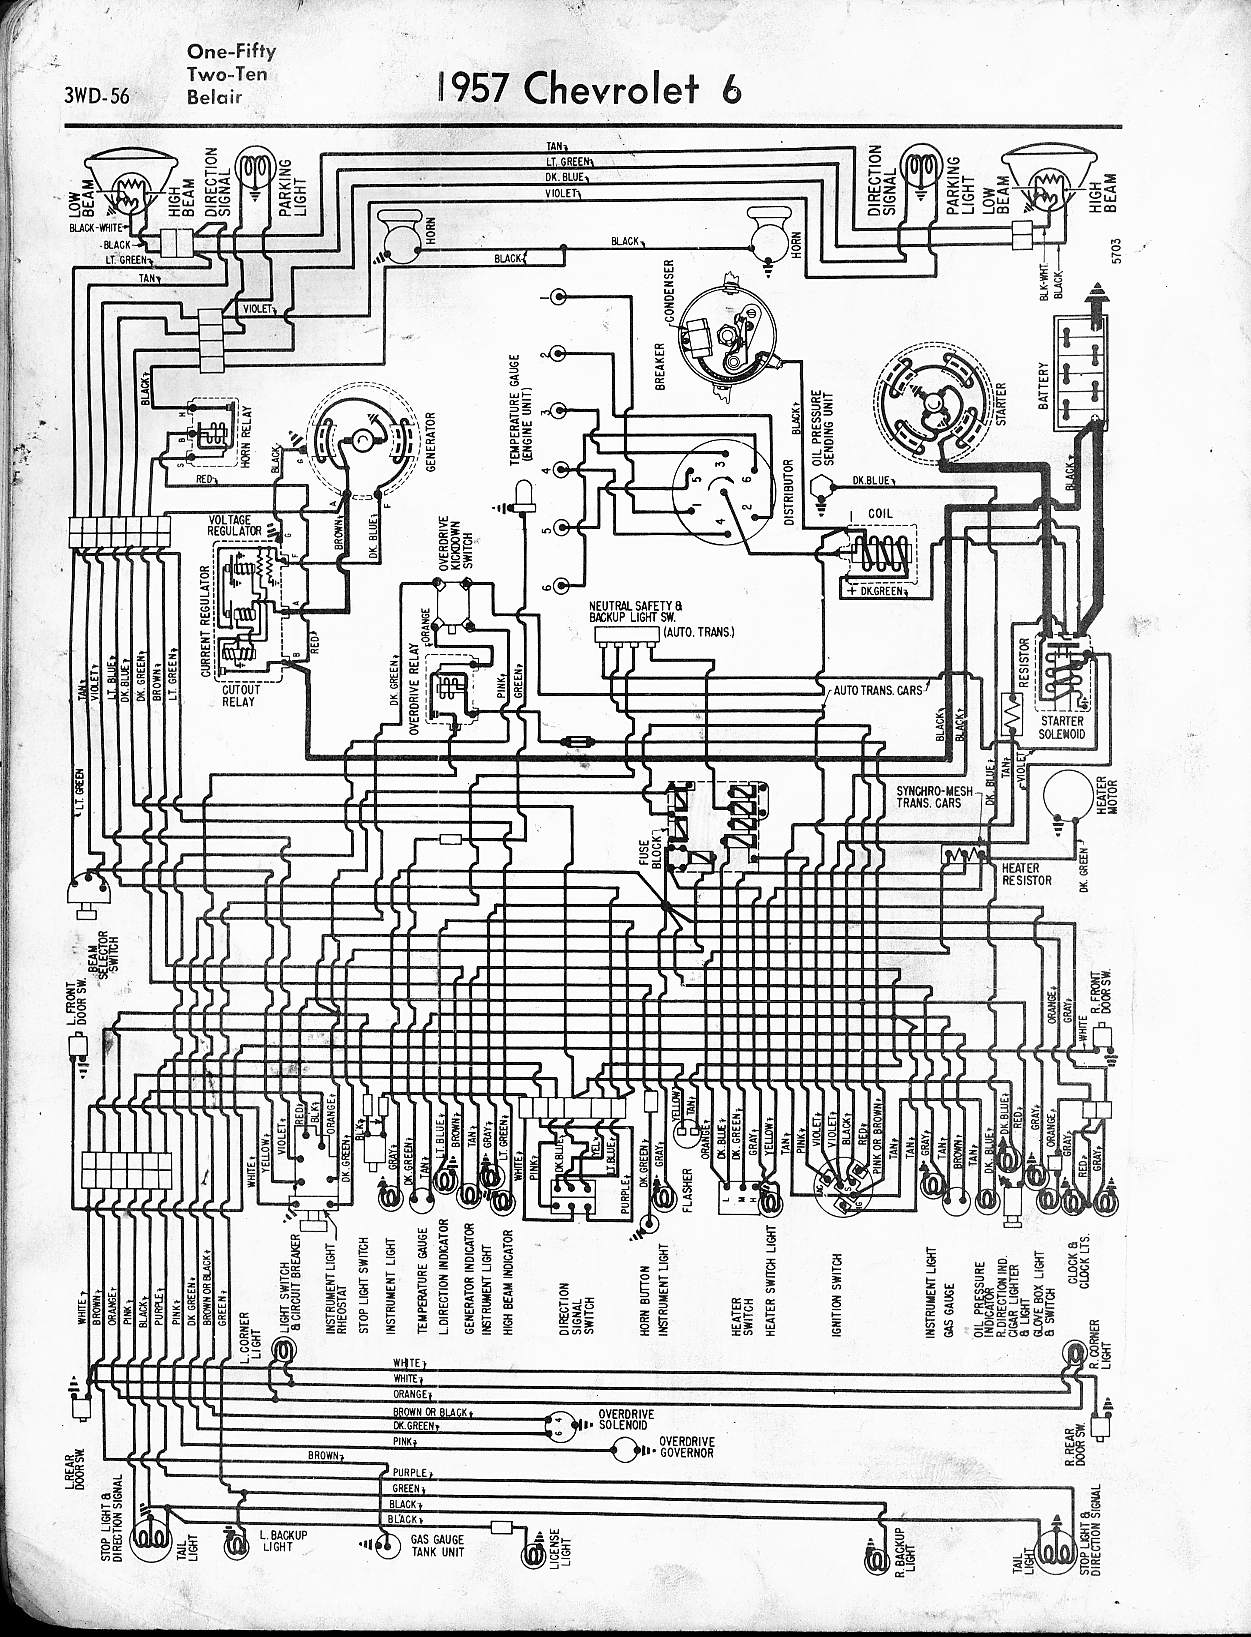 1957 Chevy Pickup Wiring Harness Diagram Data 57 For Horn 56 Library 1954